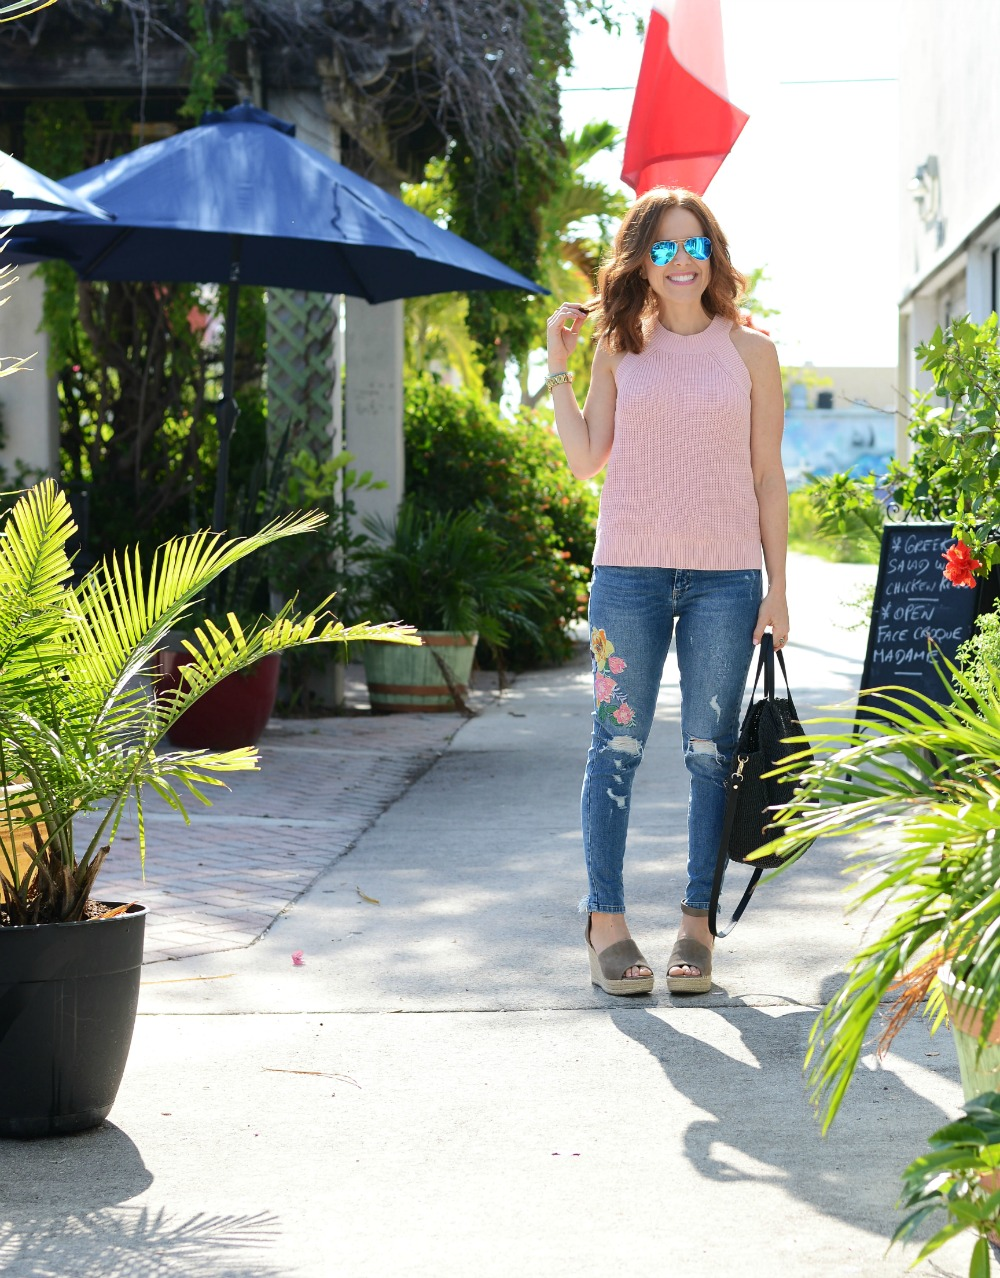 Florida blogger and mom at The Modern Savvy shows how to really wear the embroidered denim trend for summer // the modern savvy